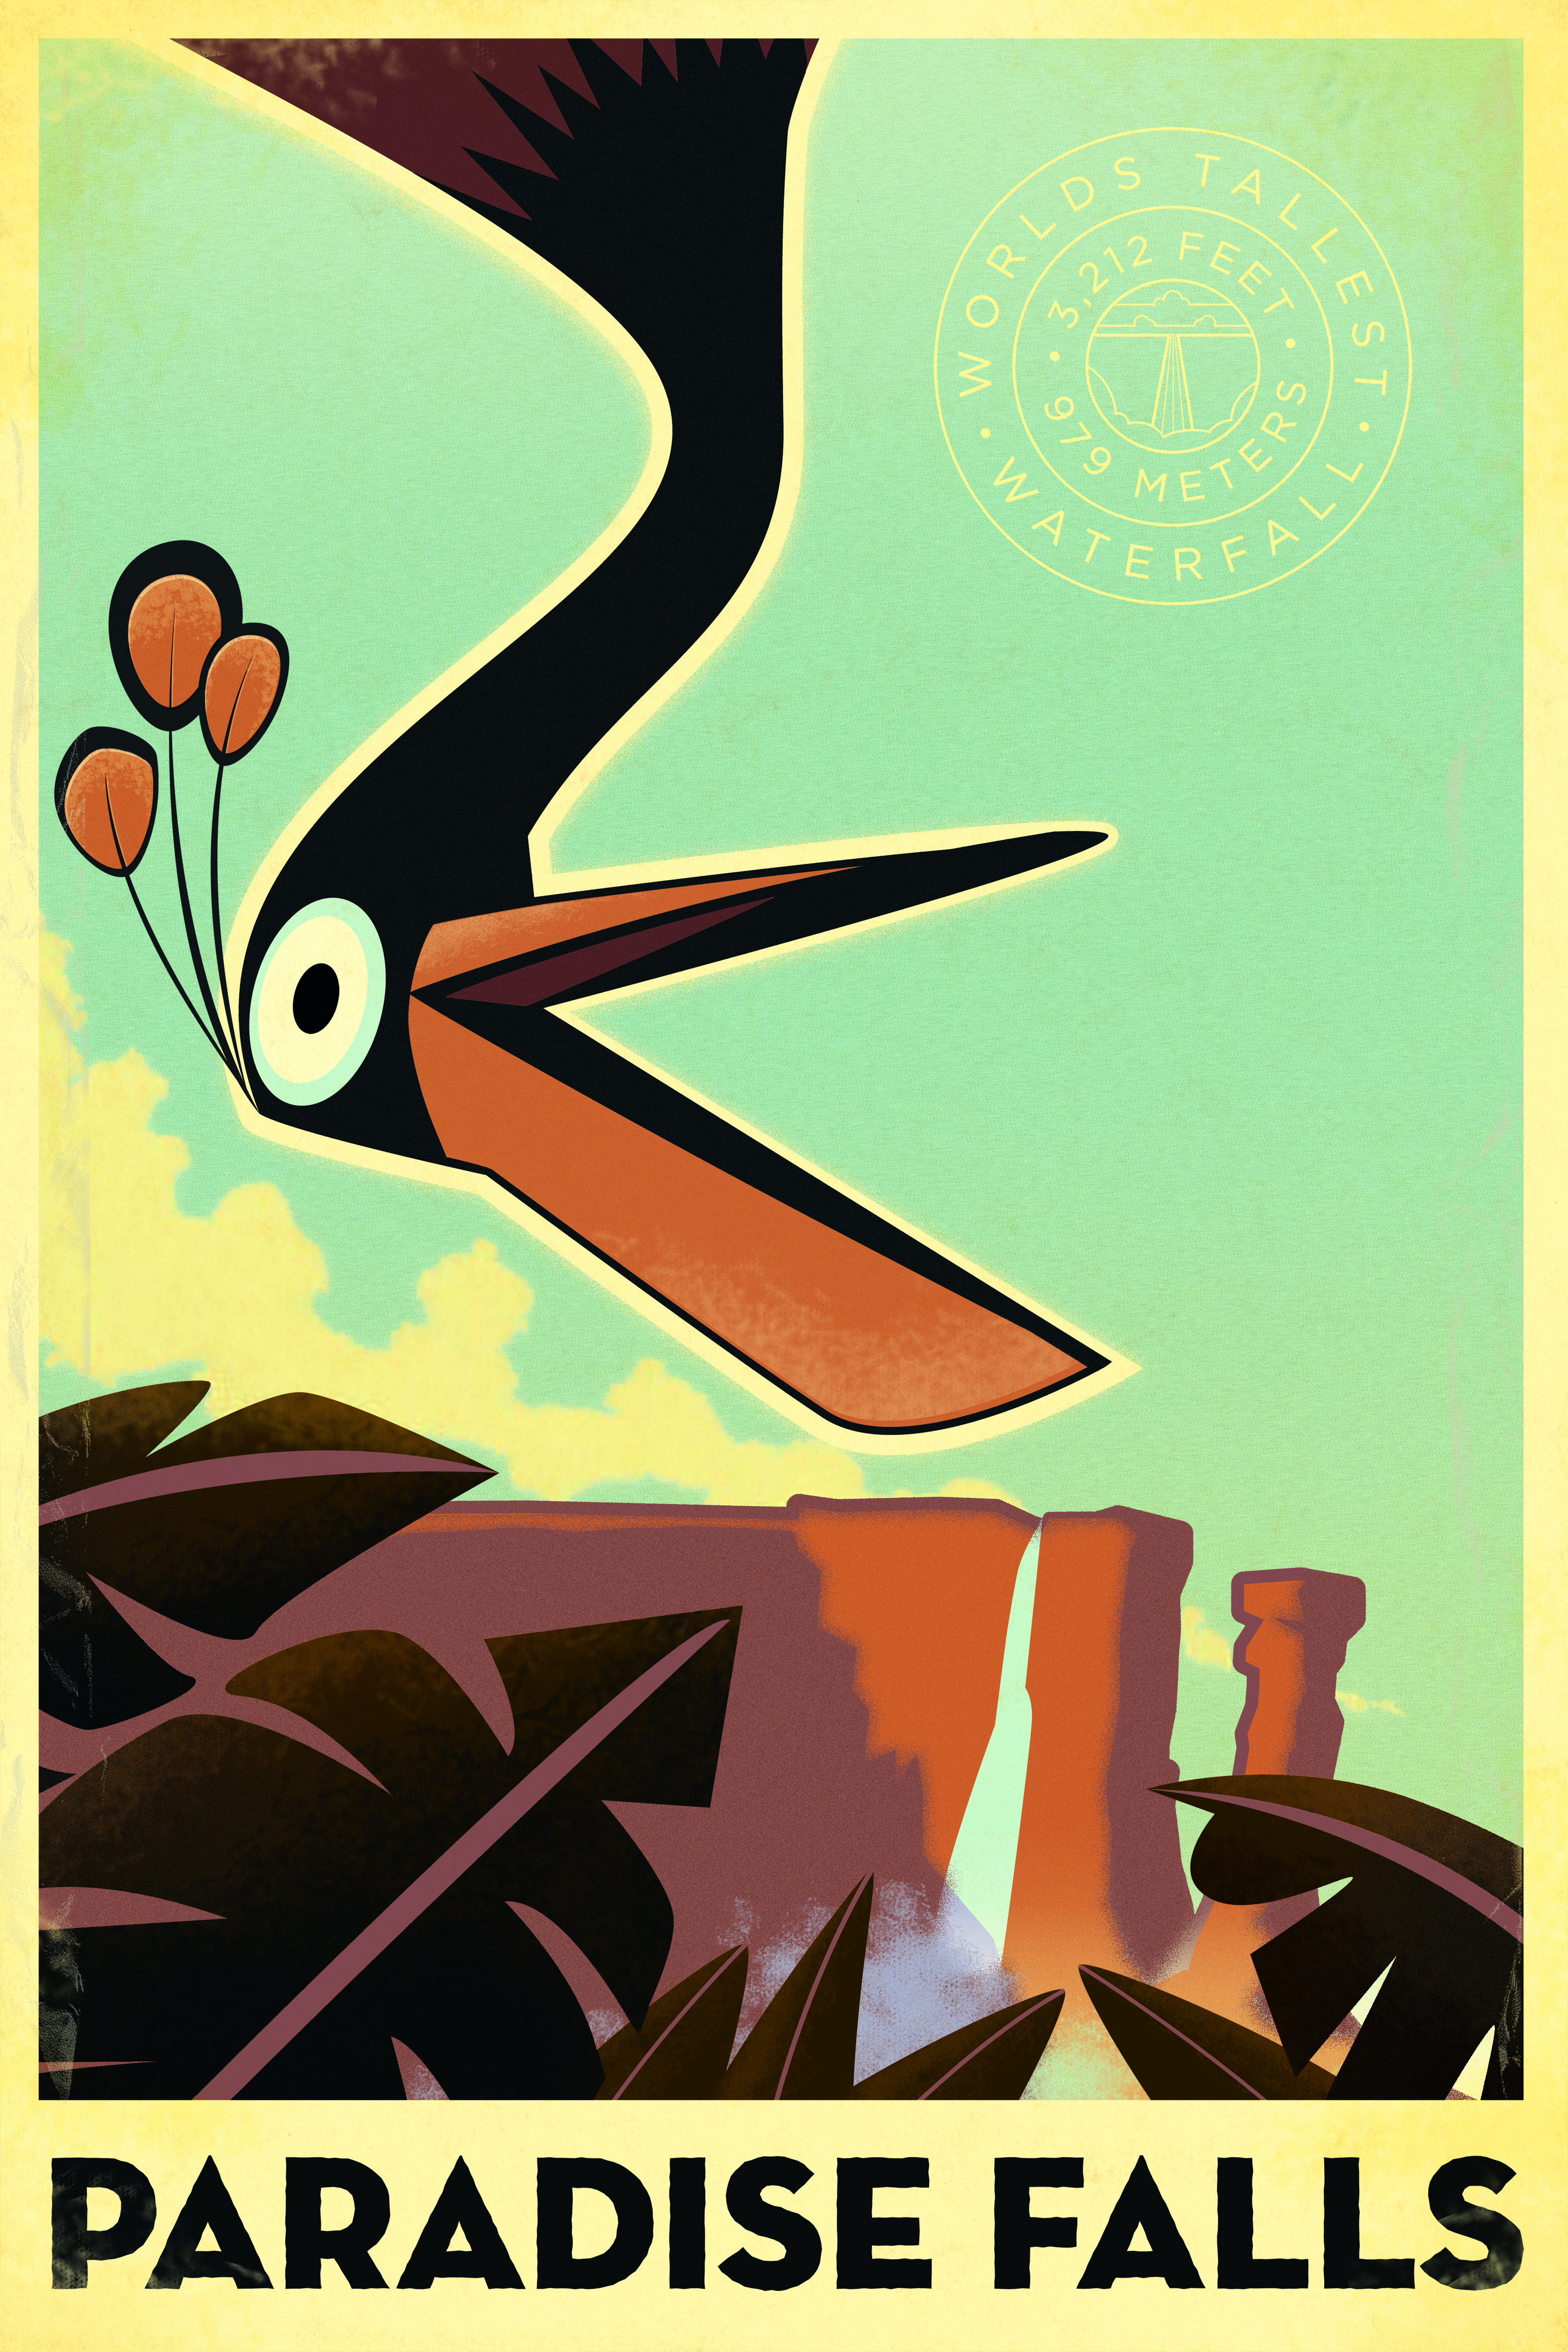 The coolest stuff you're likely to see today! Pixar releases Art ...